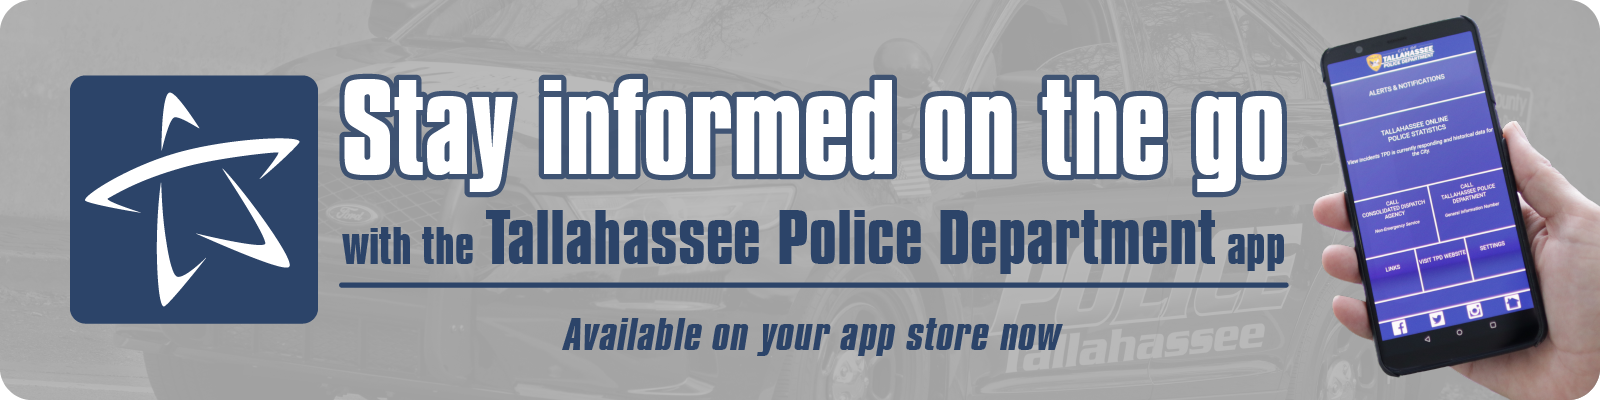 Stay informed on the go - with the TPD mobile app available on your app store now